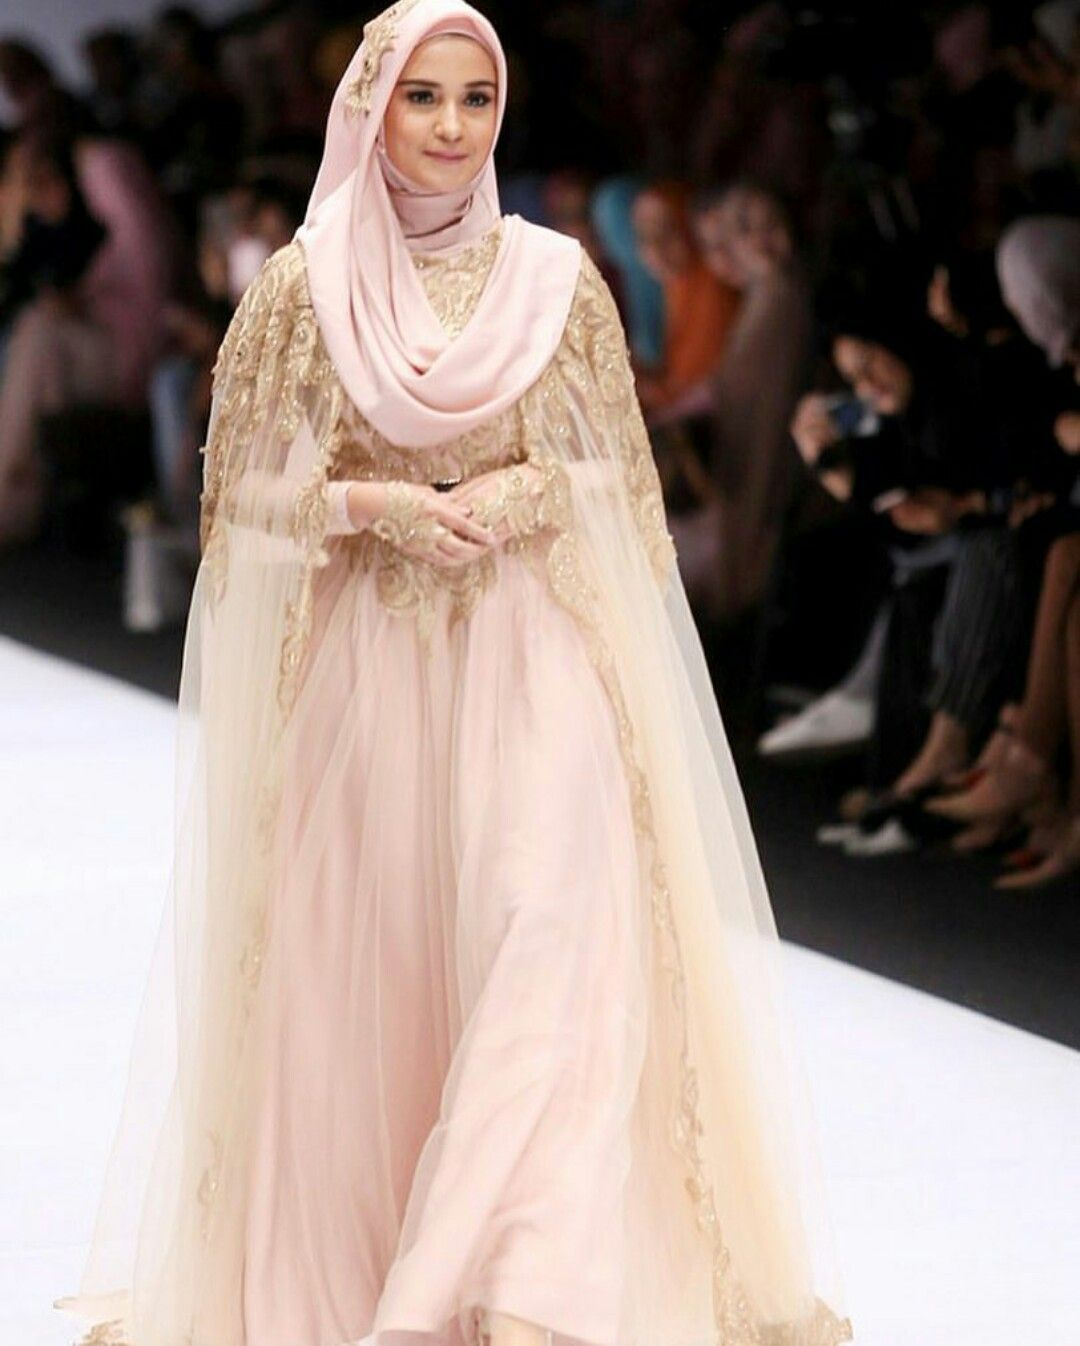 Wedding Gowns Ideas: I Like The Idea Of A Cape To Make The Dress More Modest